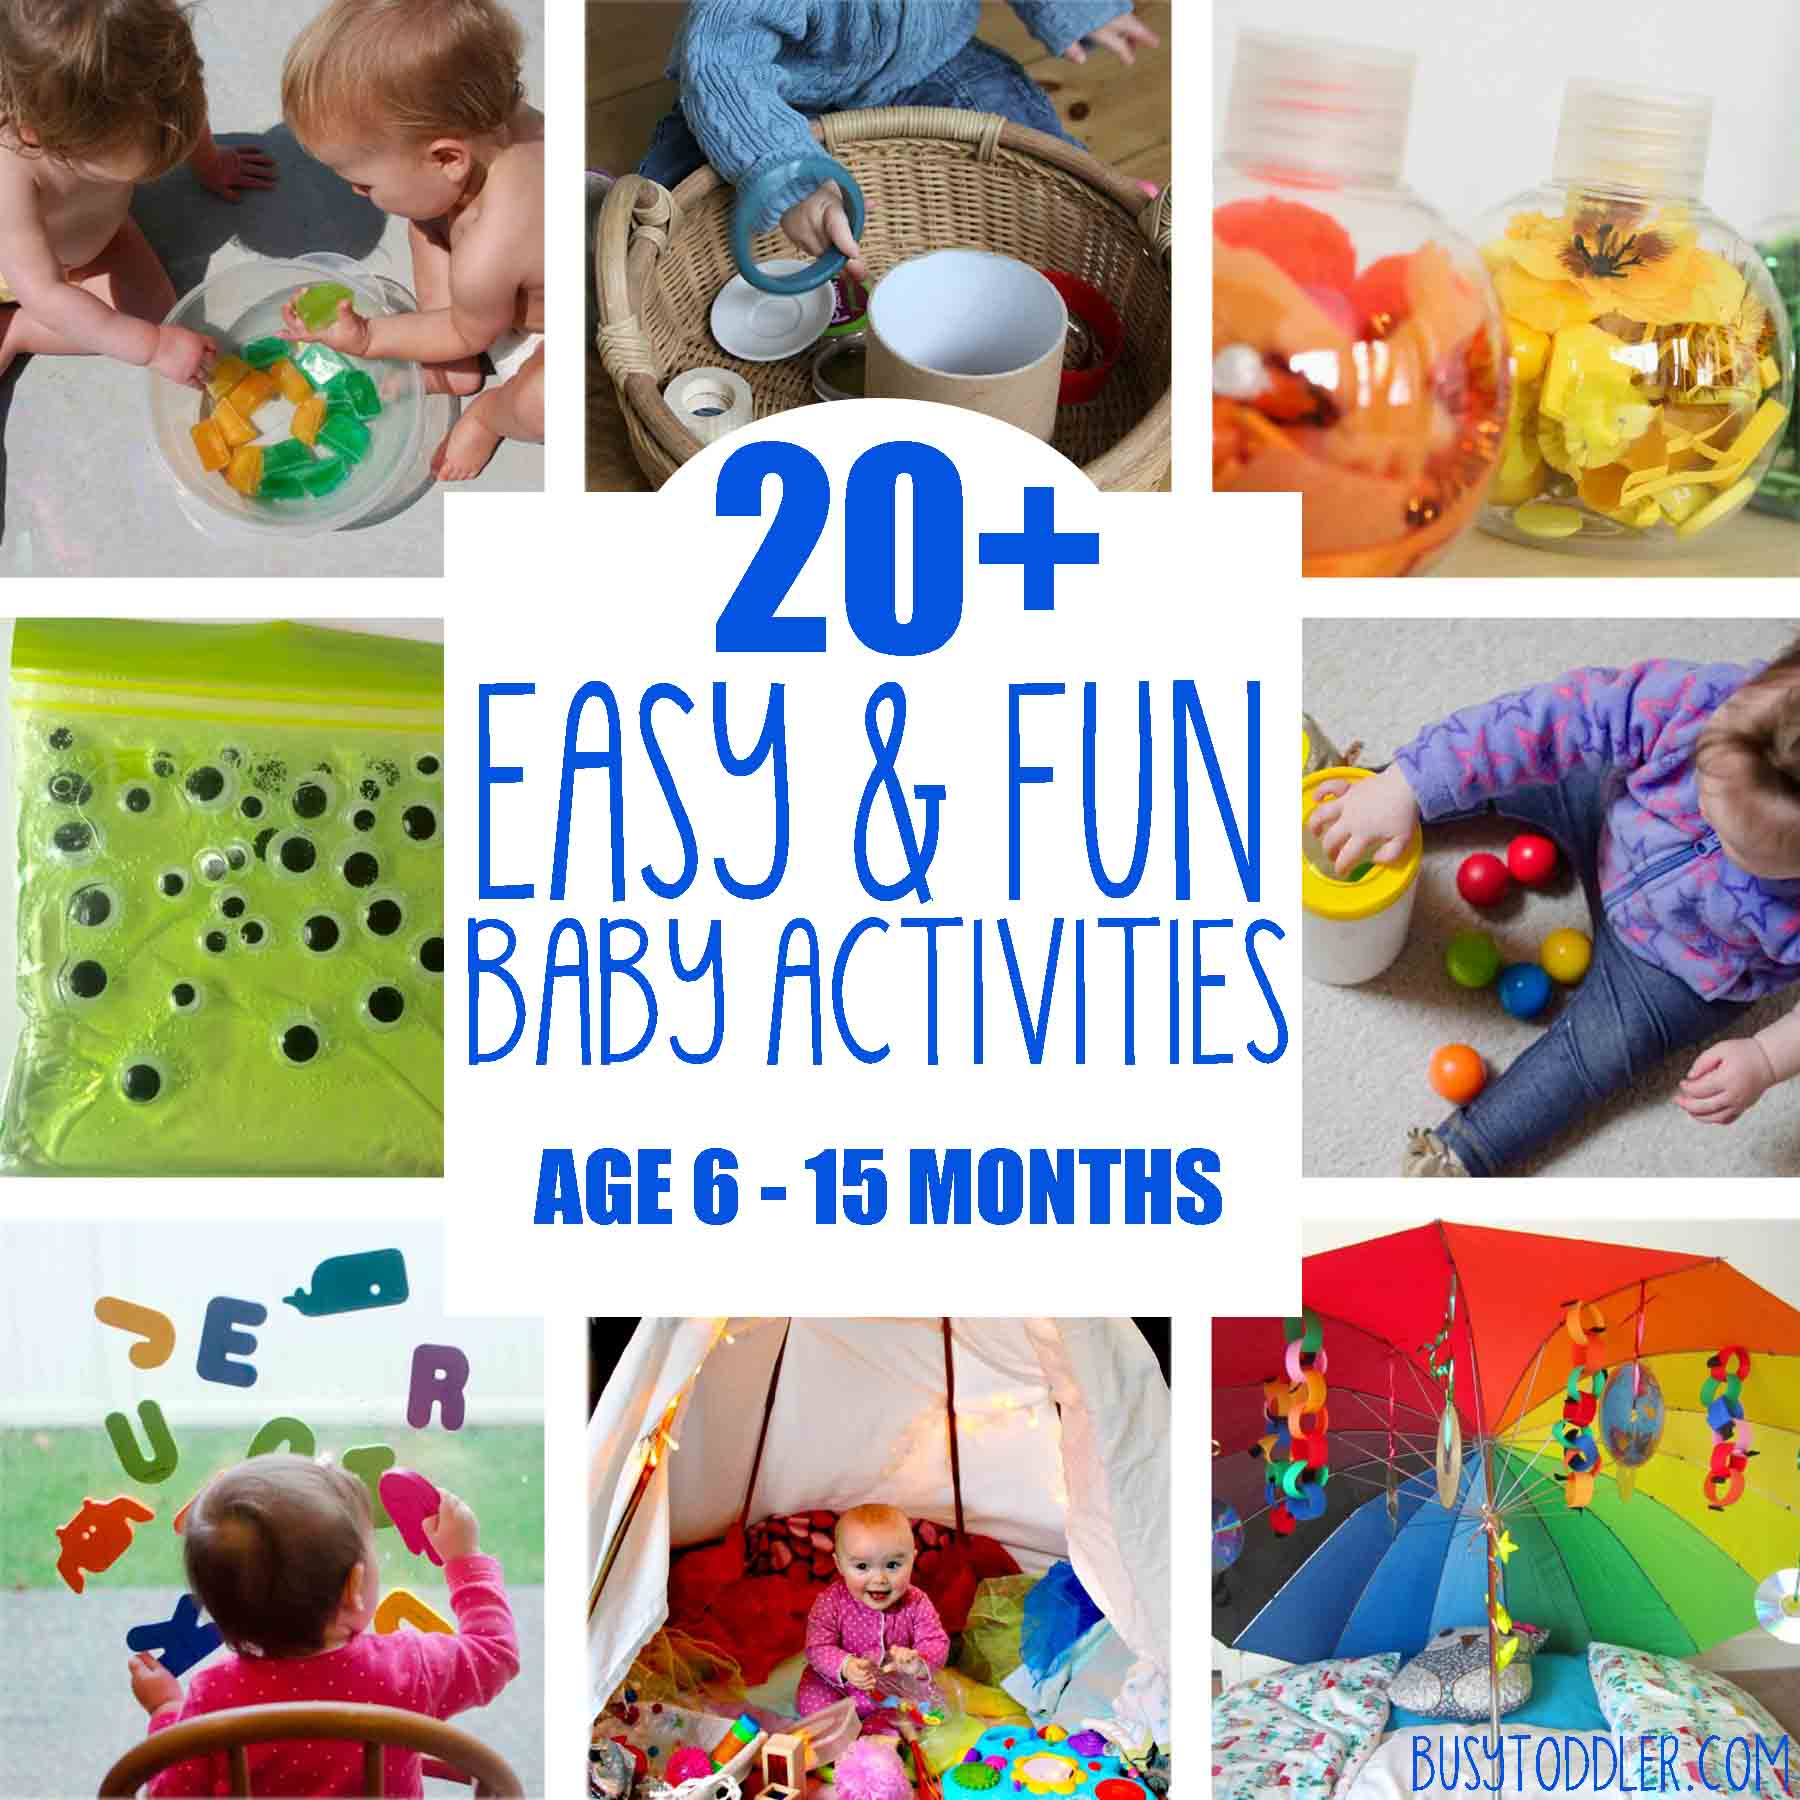 Infant Learning Chair 20 Fun Easy Baby Activities Busy Toddler